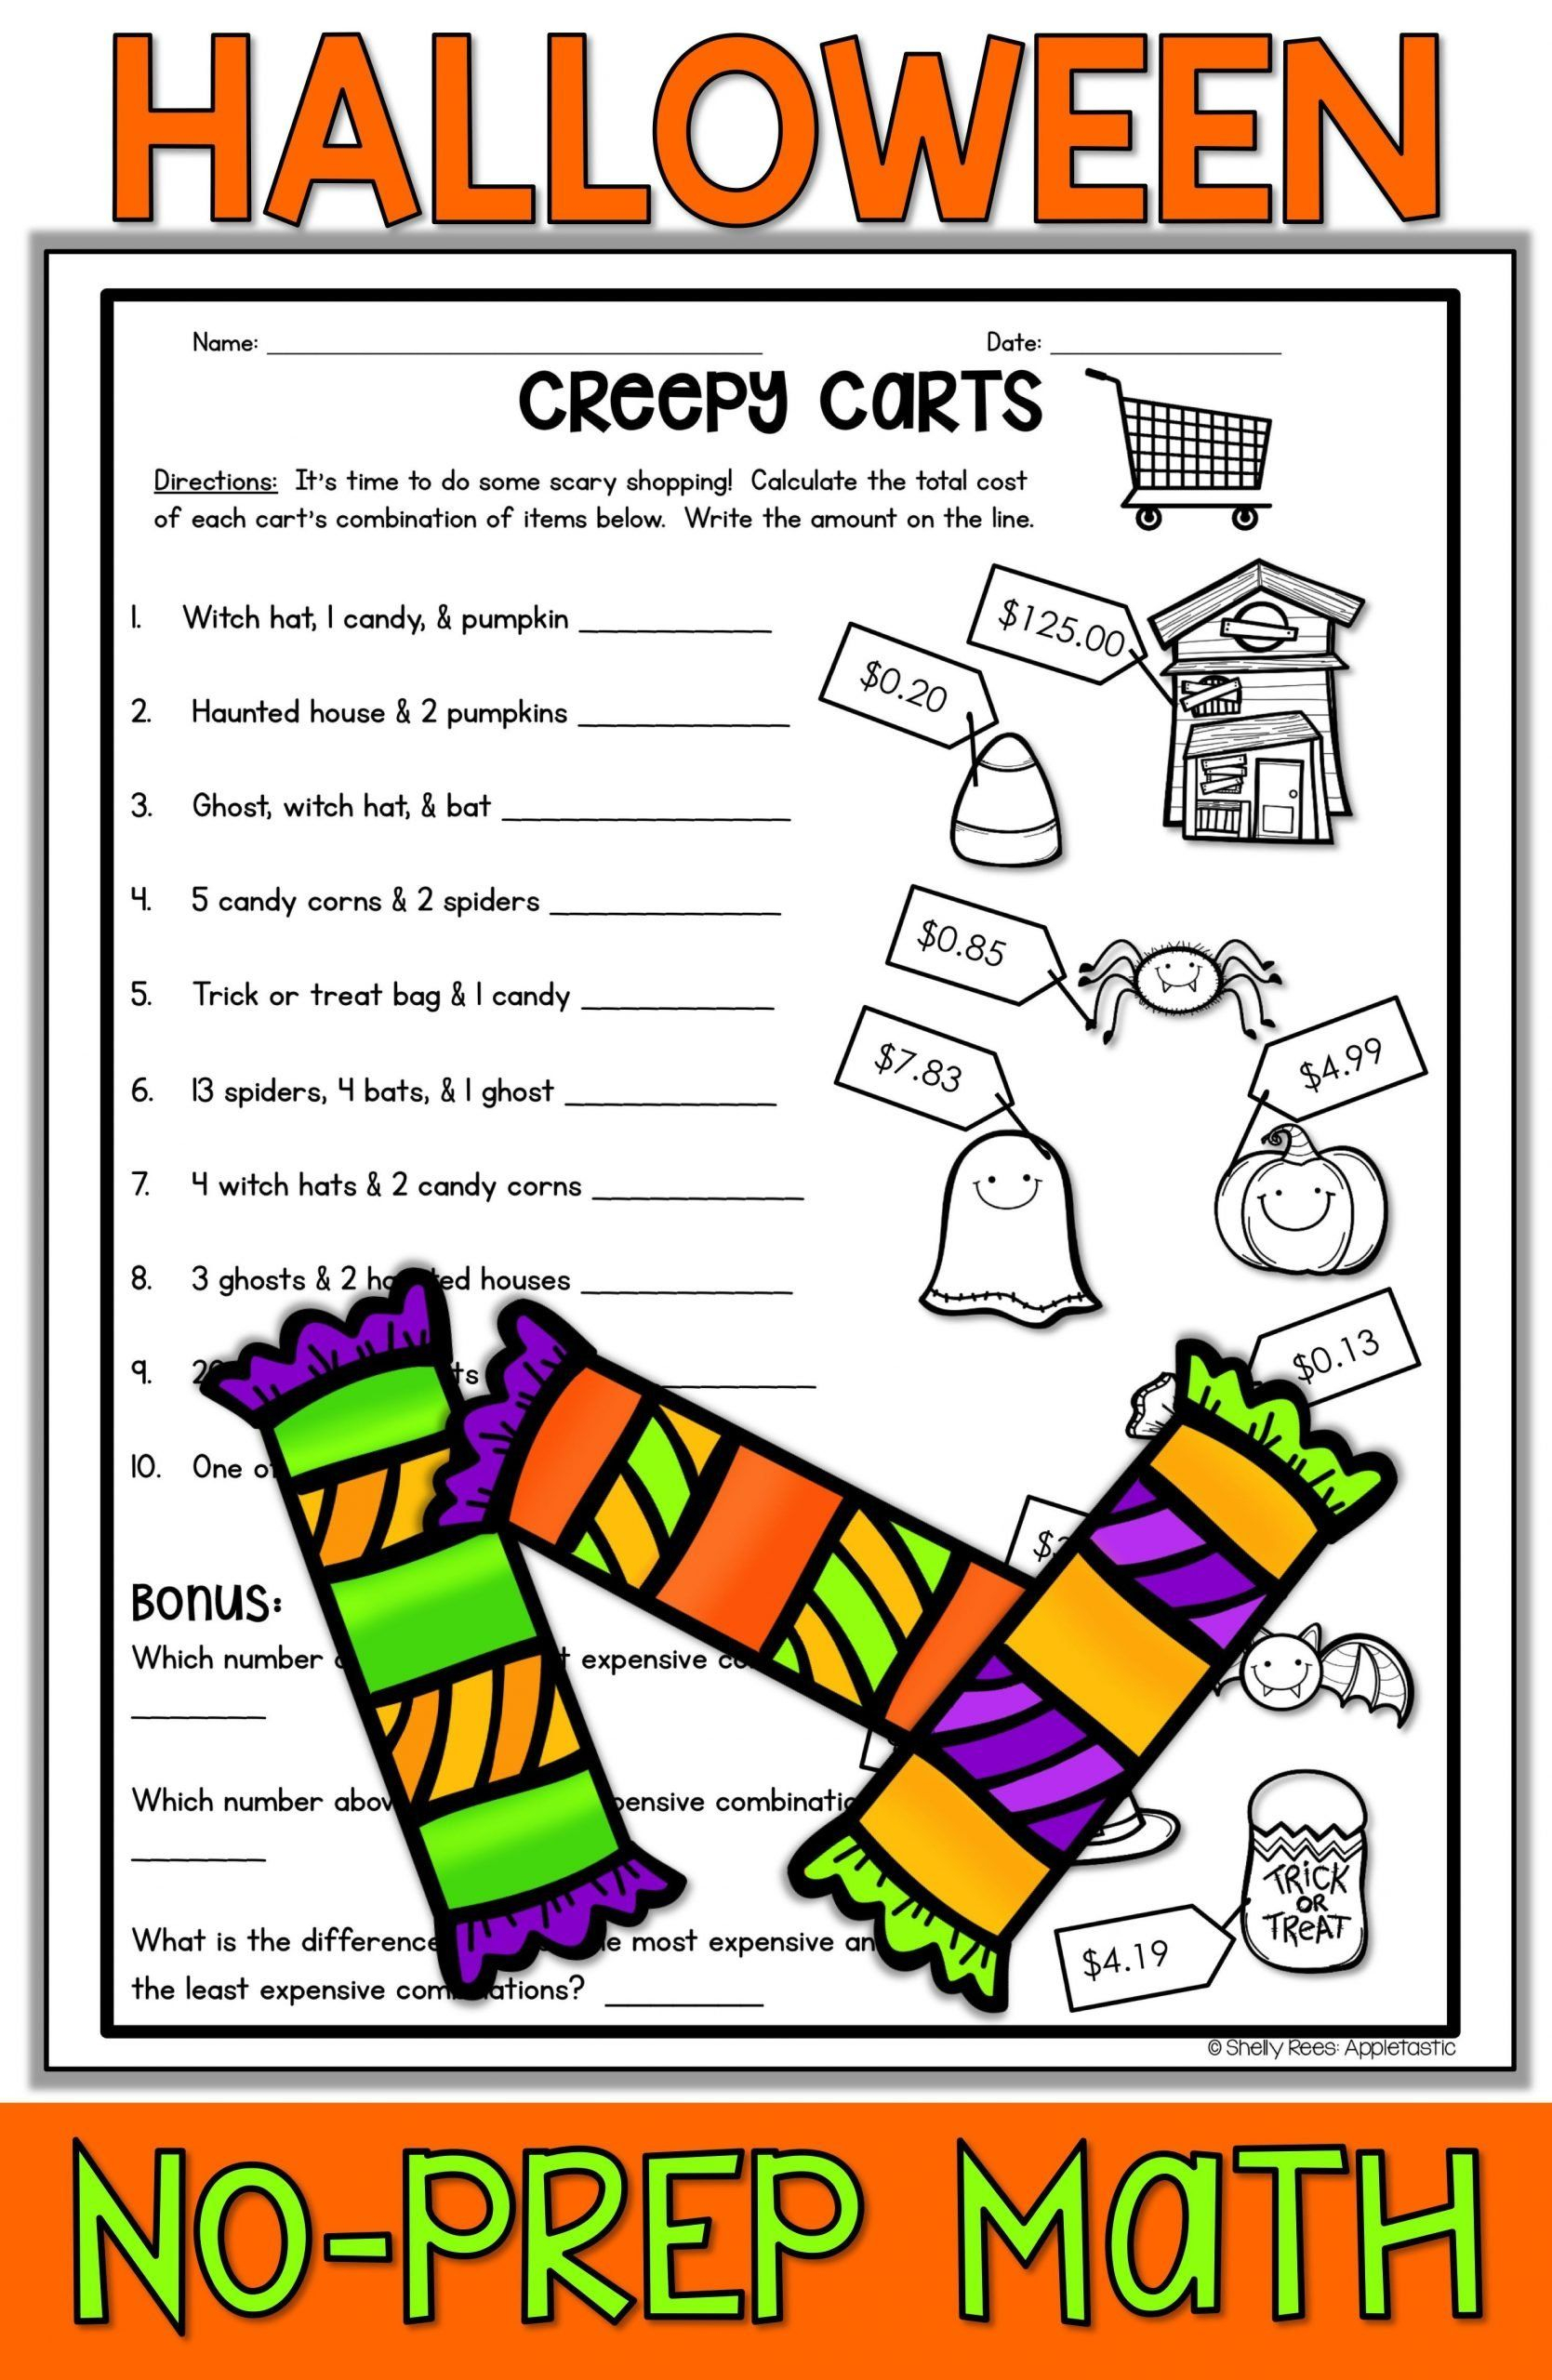 Free Printable Halloween Math Worksheets For Middle School